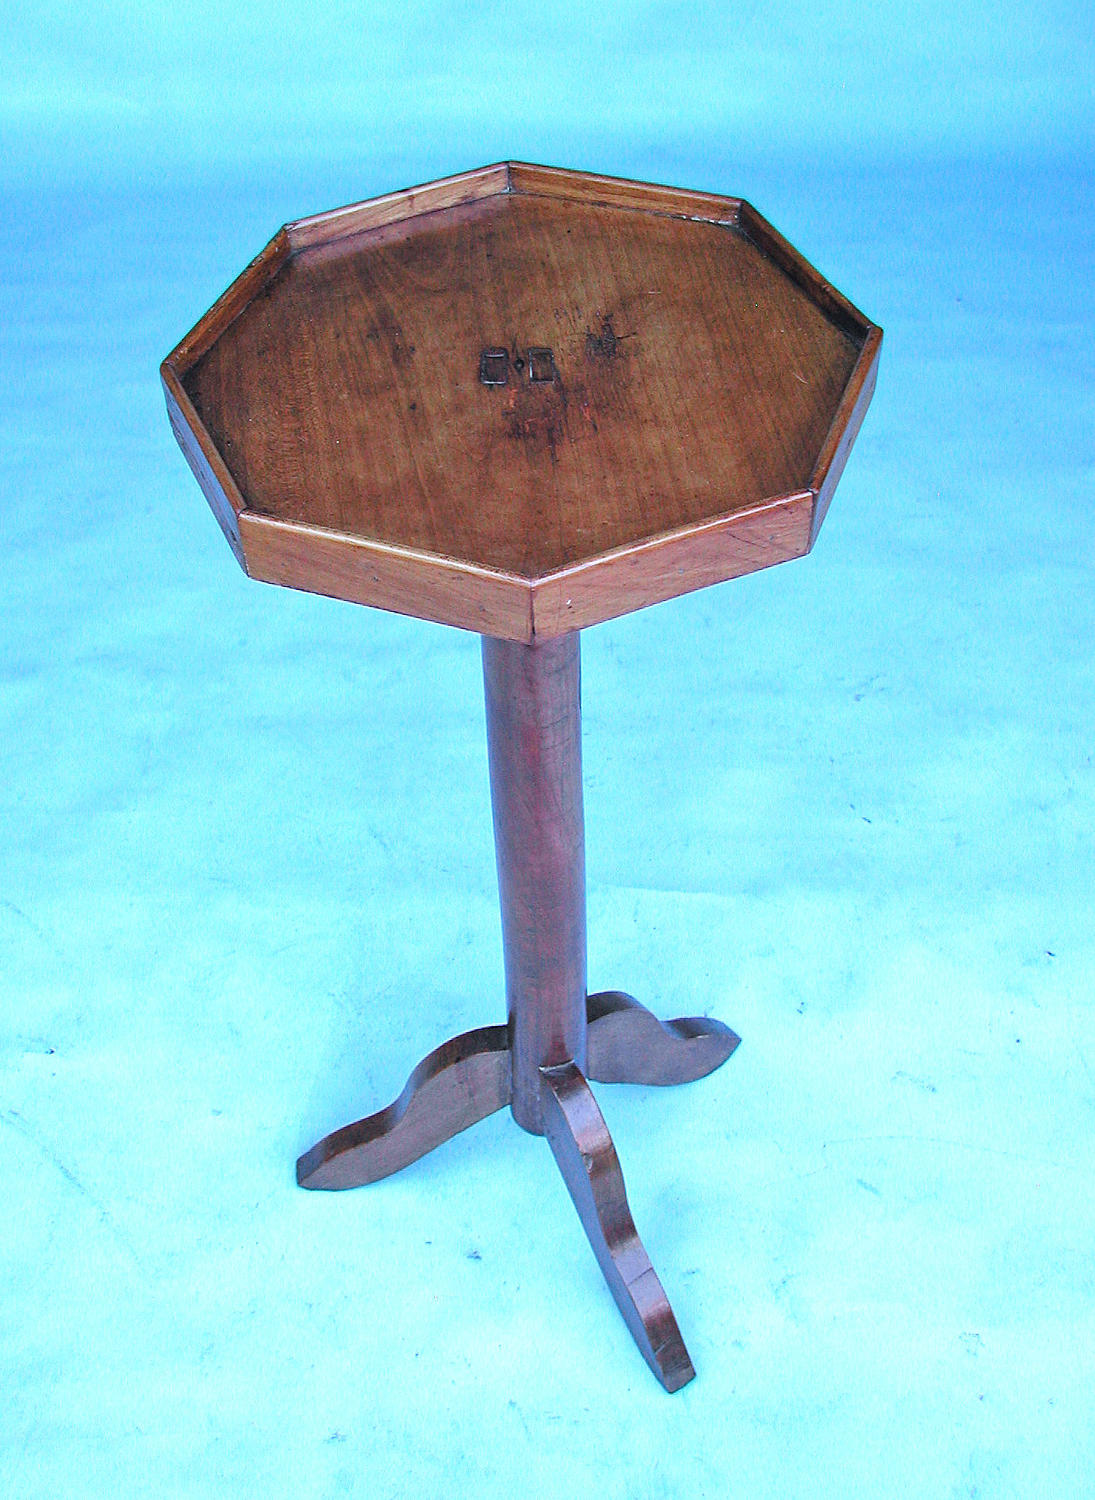 Early Furniture 19thc Fruitwood Candlestand.  French. C1800-20.